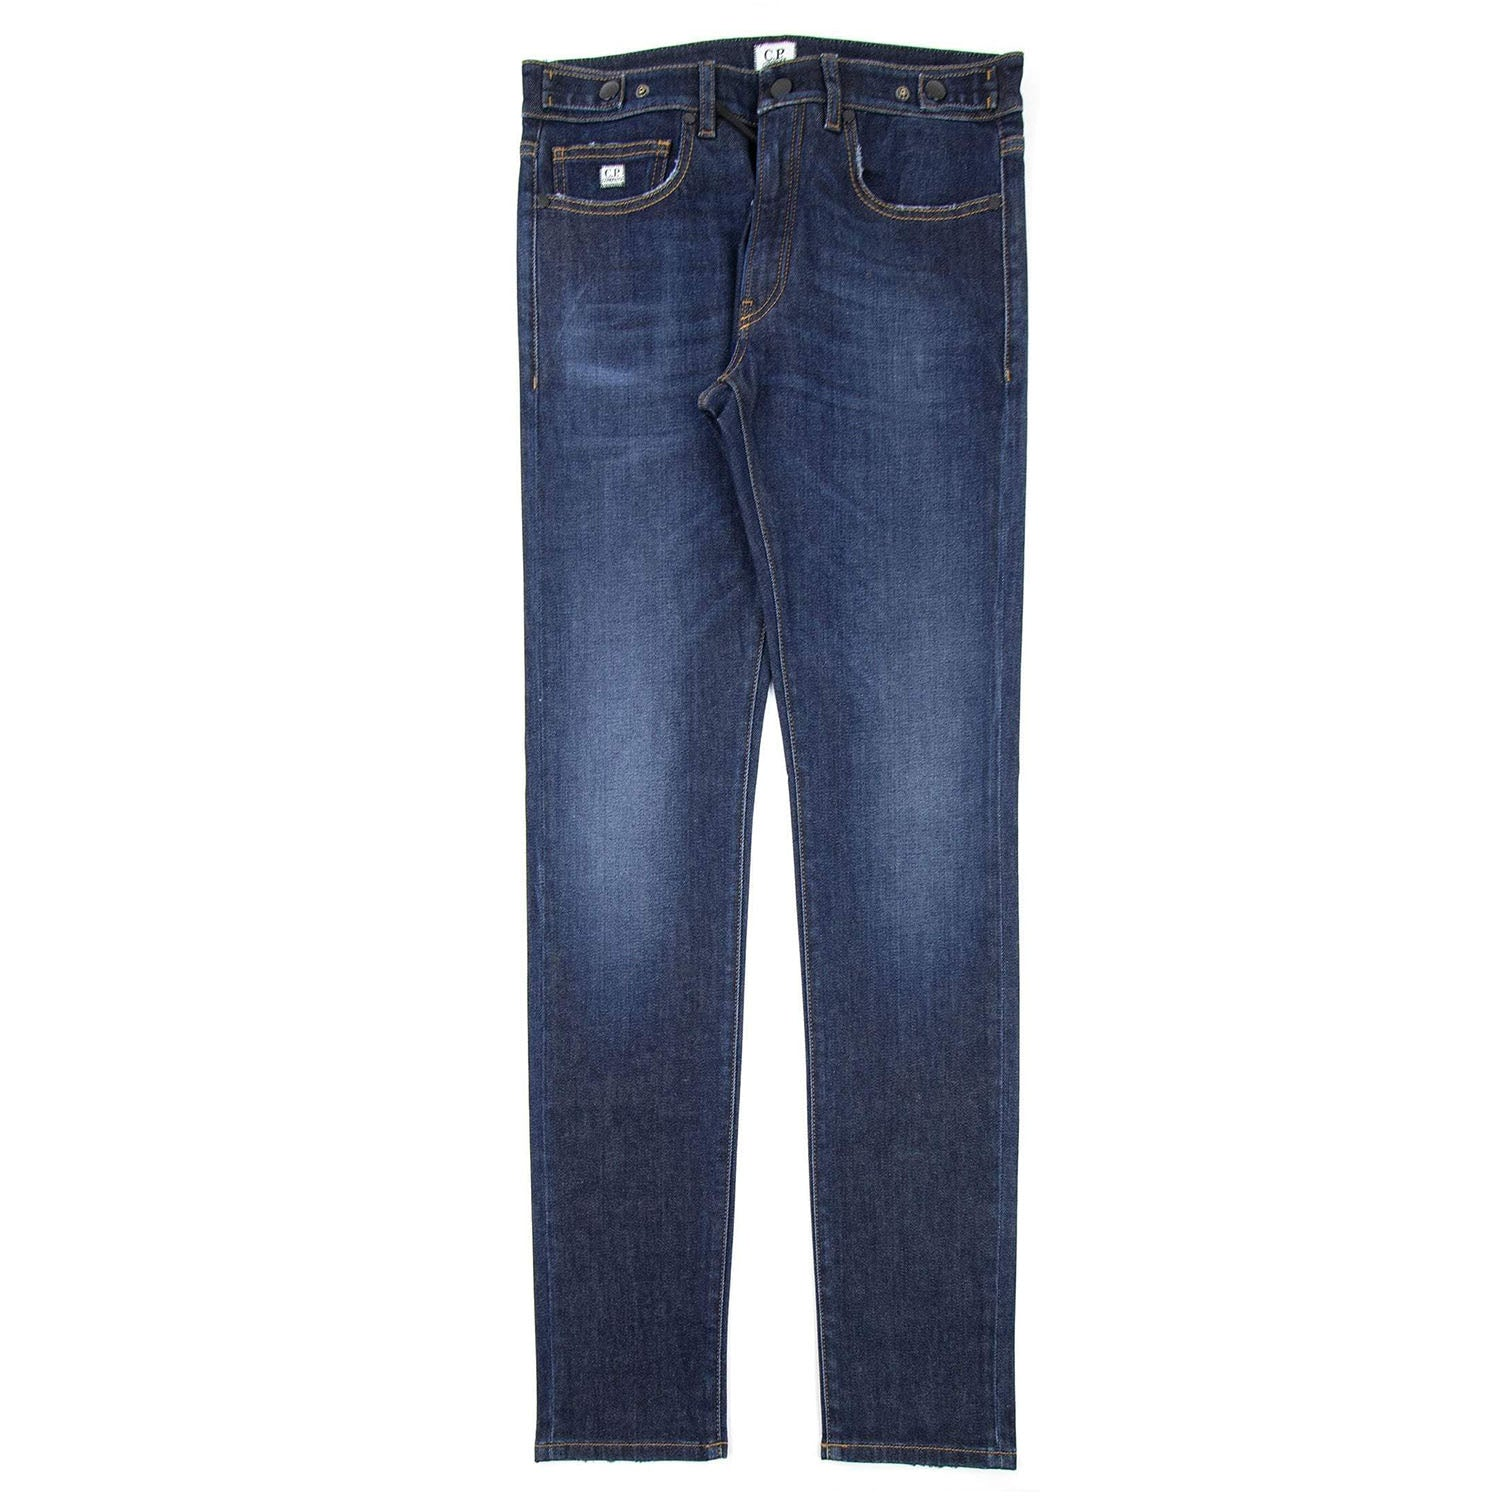 CP Company Slim Fit Dark Wash Jeans